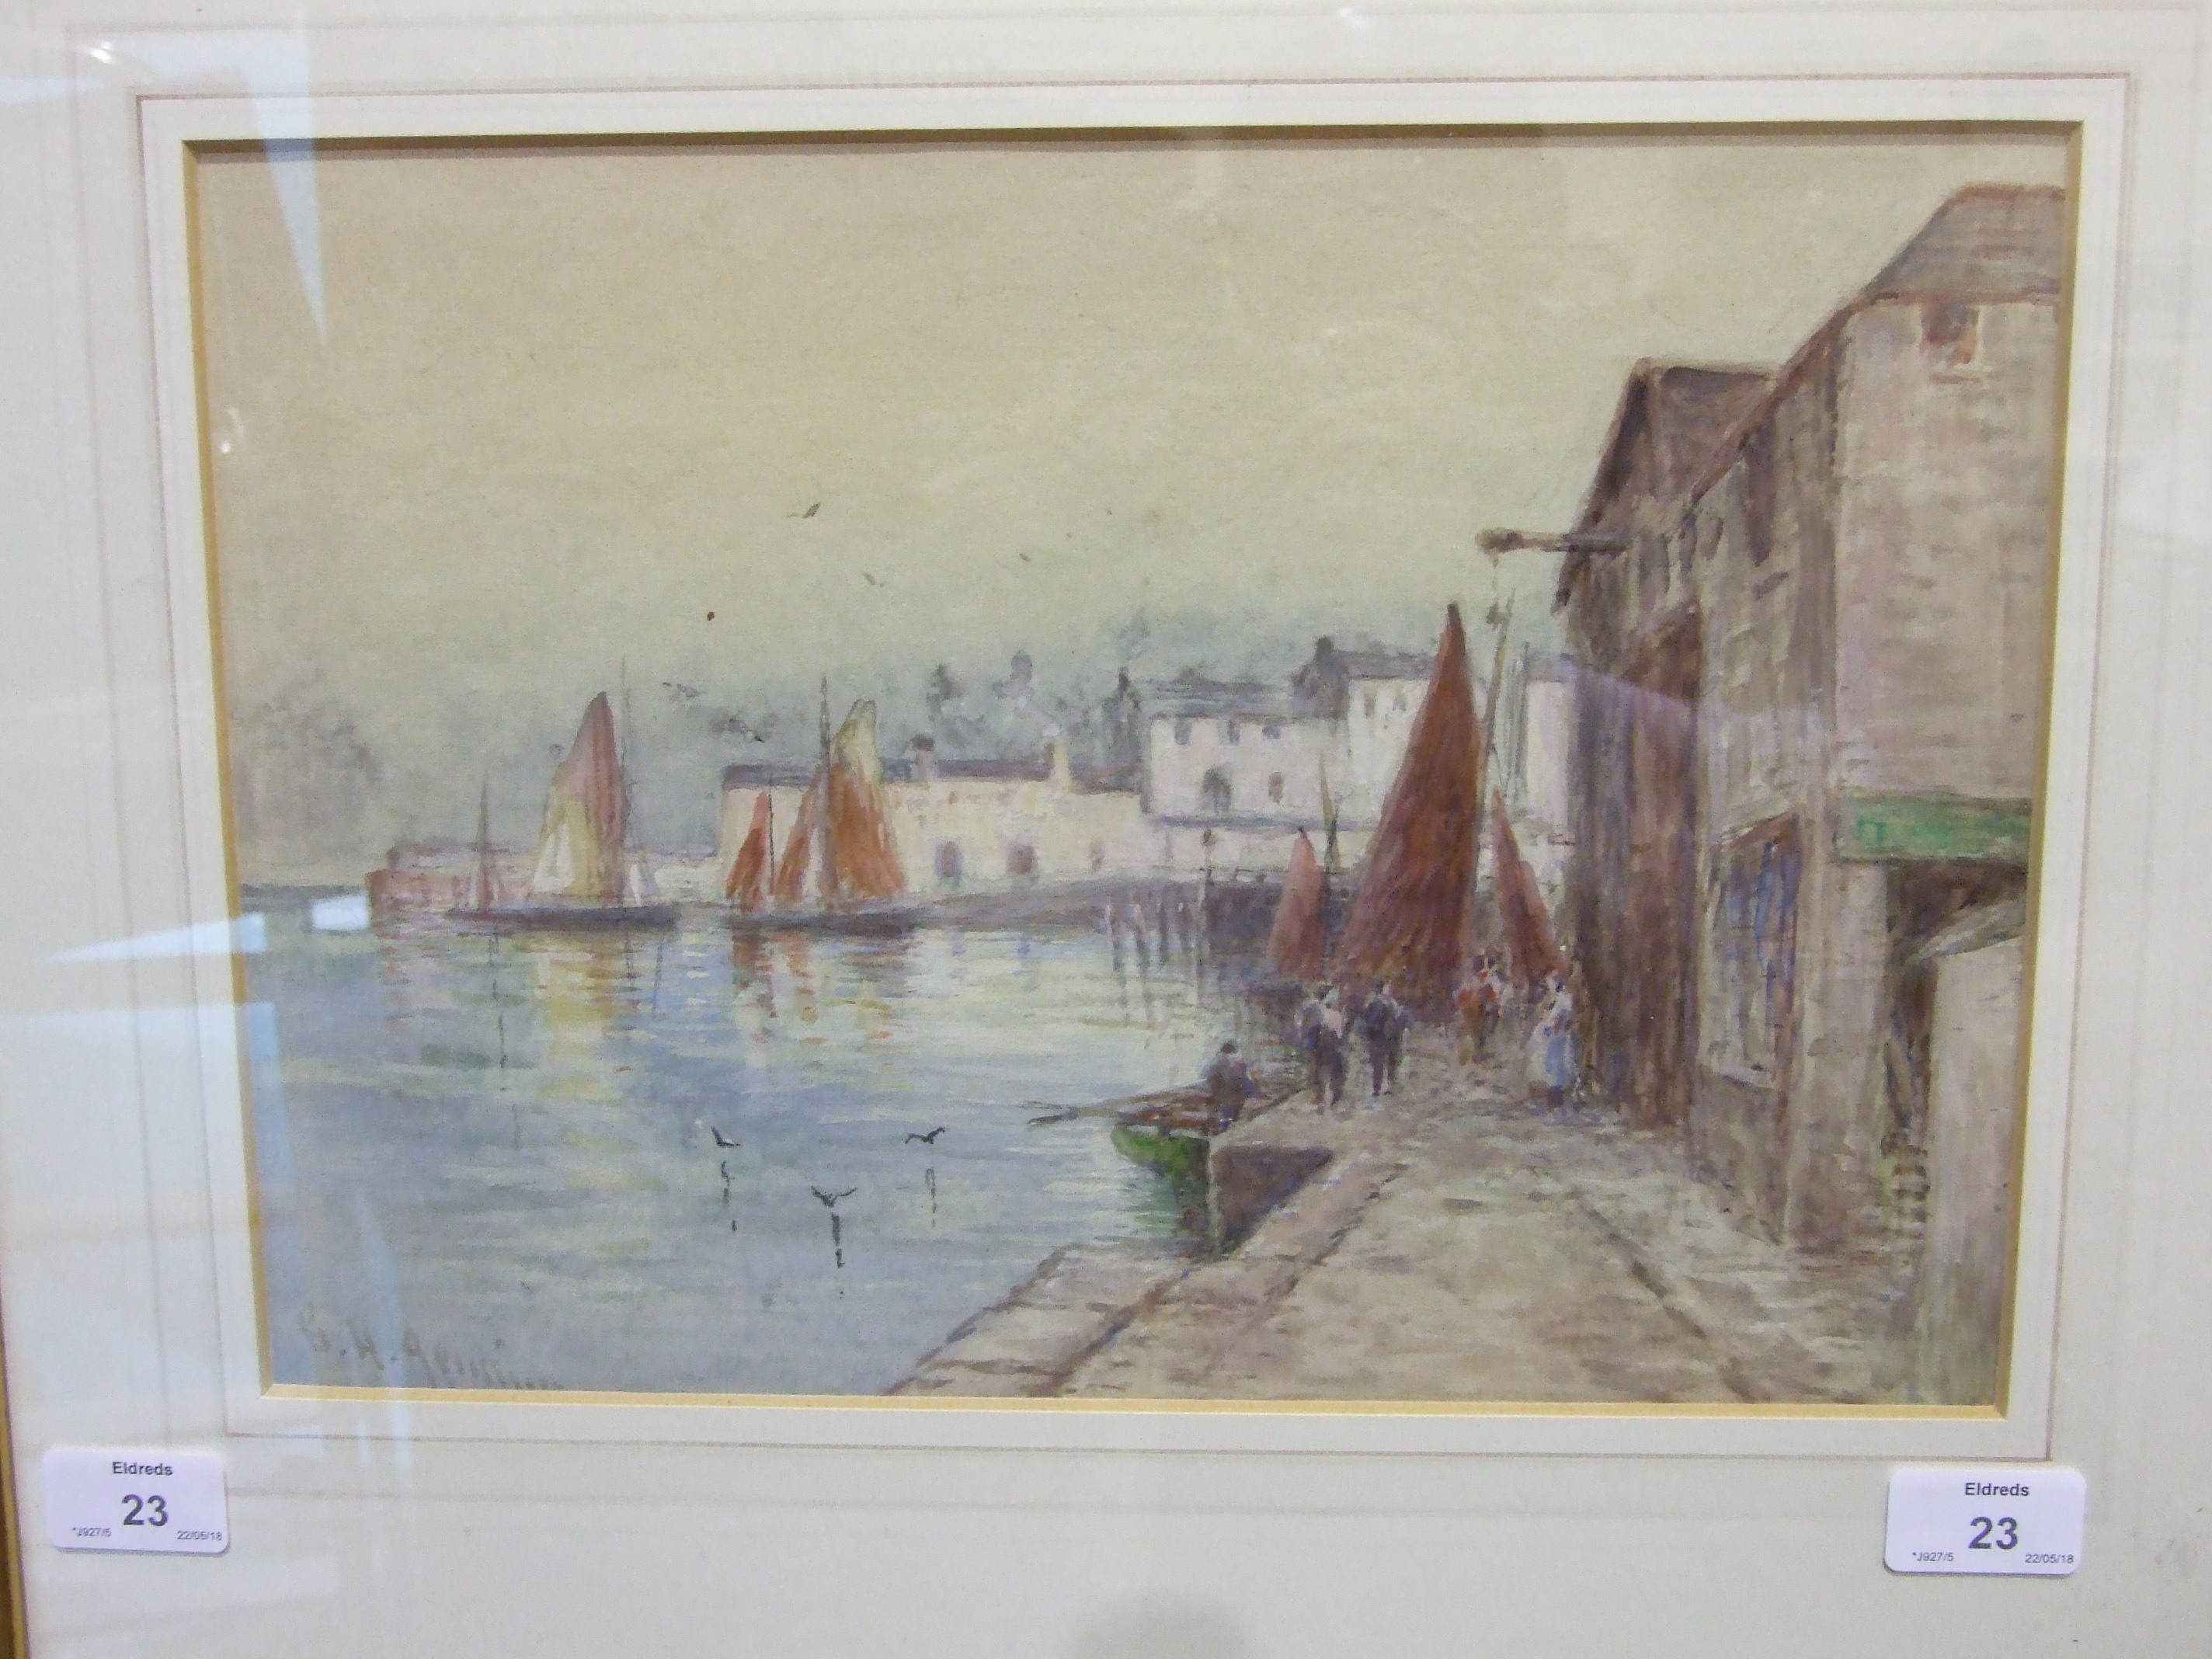 G H Jenkins (1843-1914) A CORNISH FISHING VILLAGE 1934, POSSIBLY NEWLYN Signed watercolour, 24.5 x